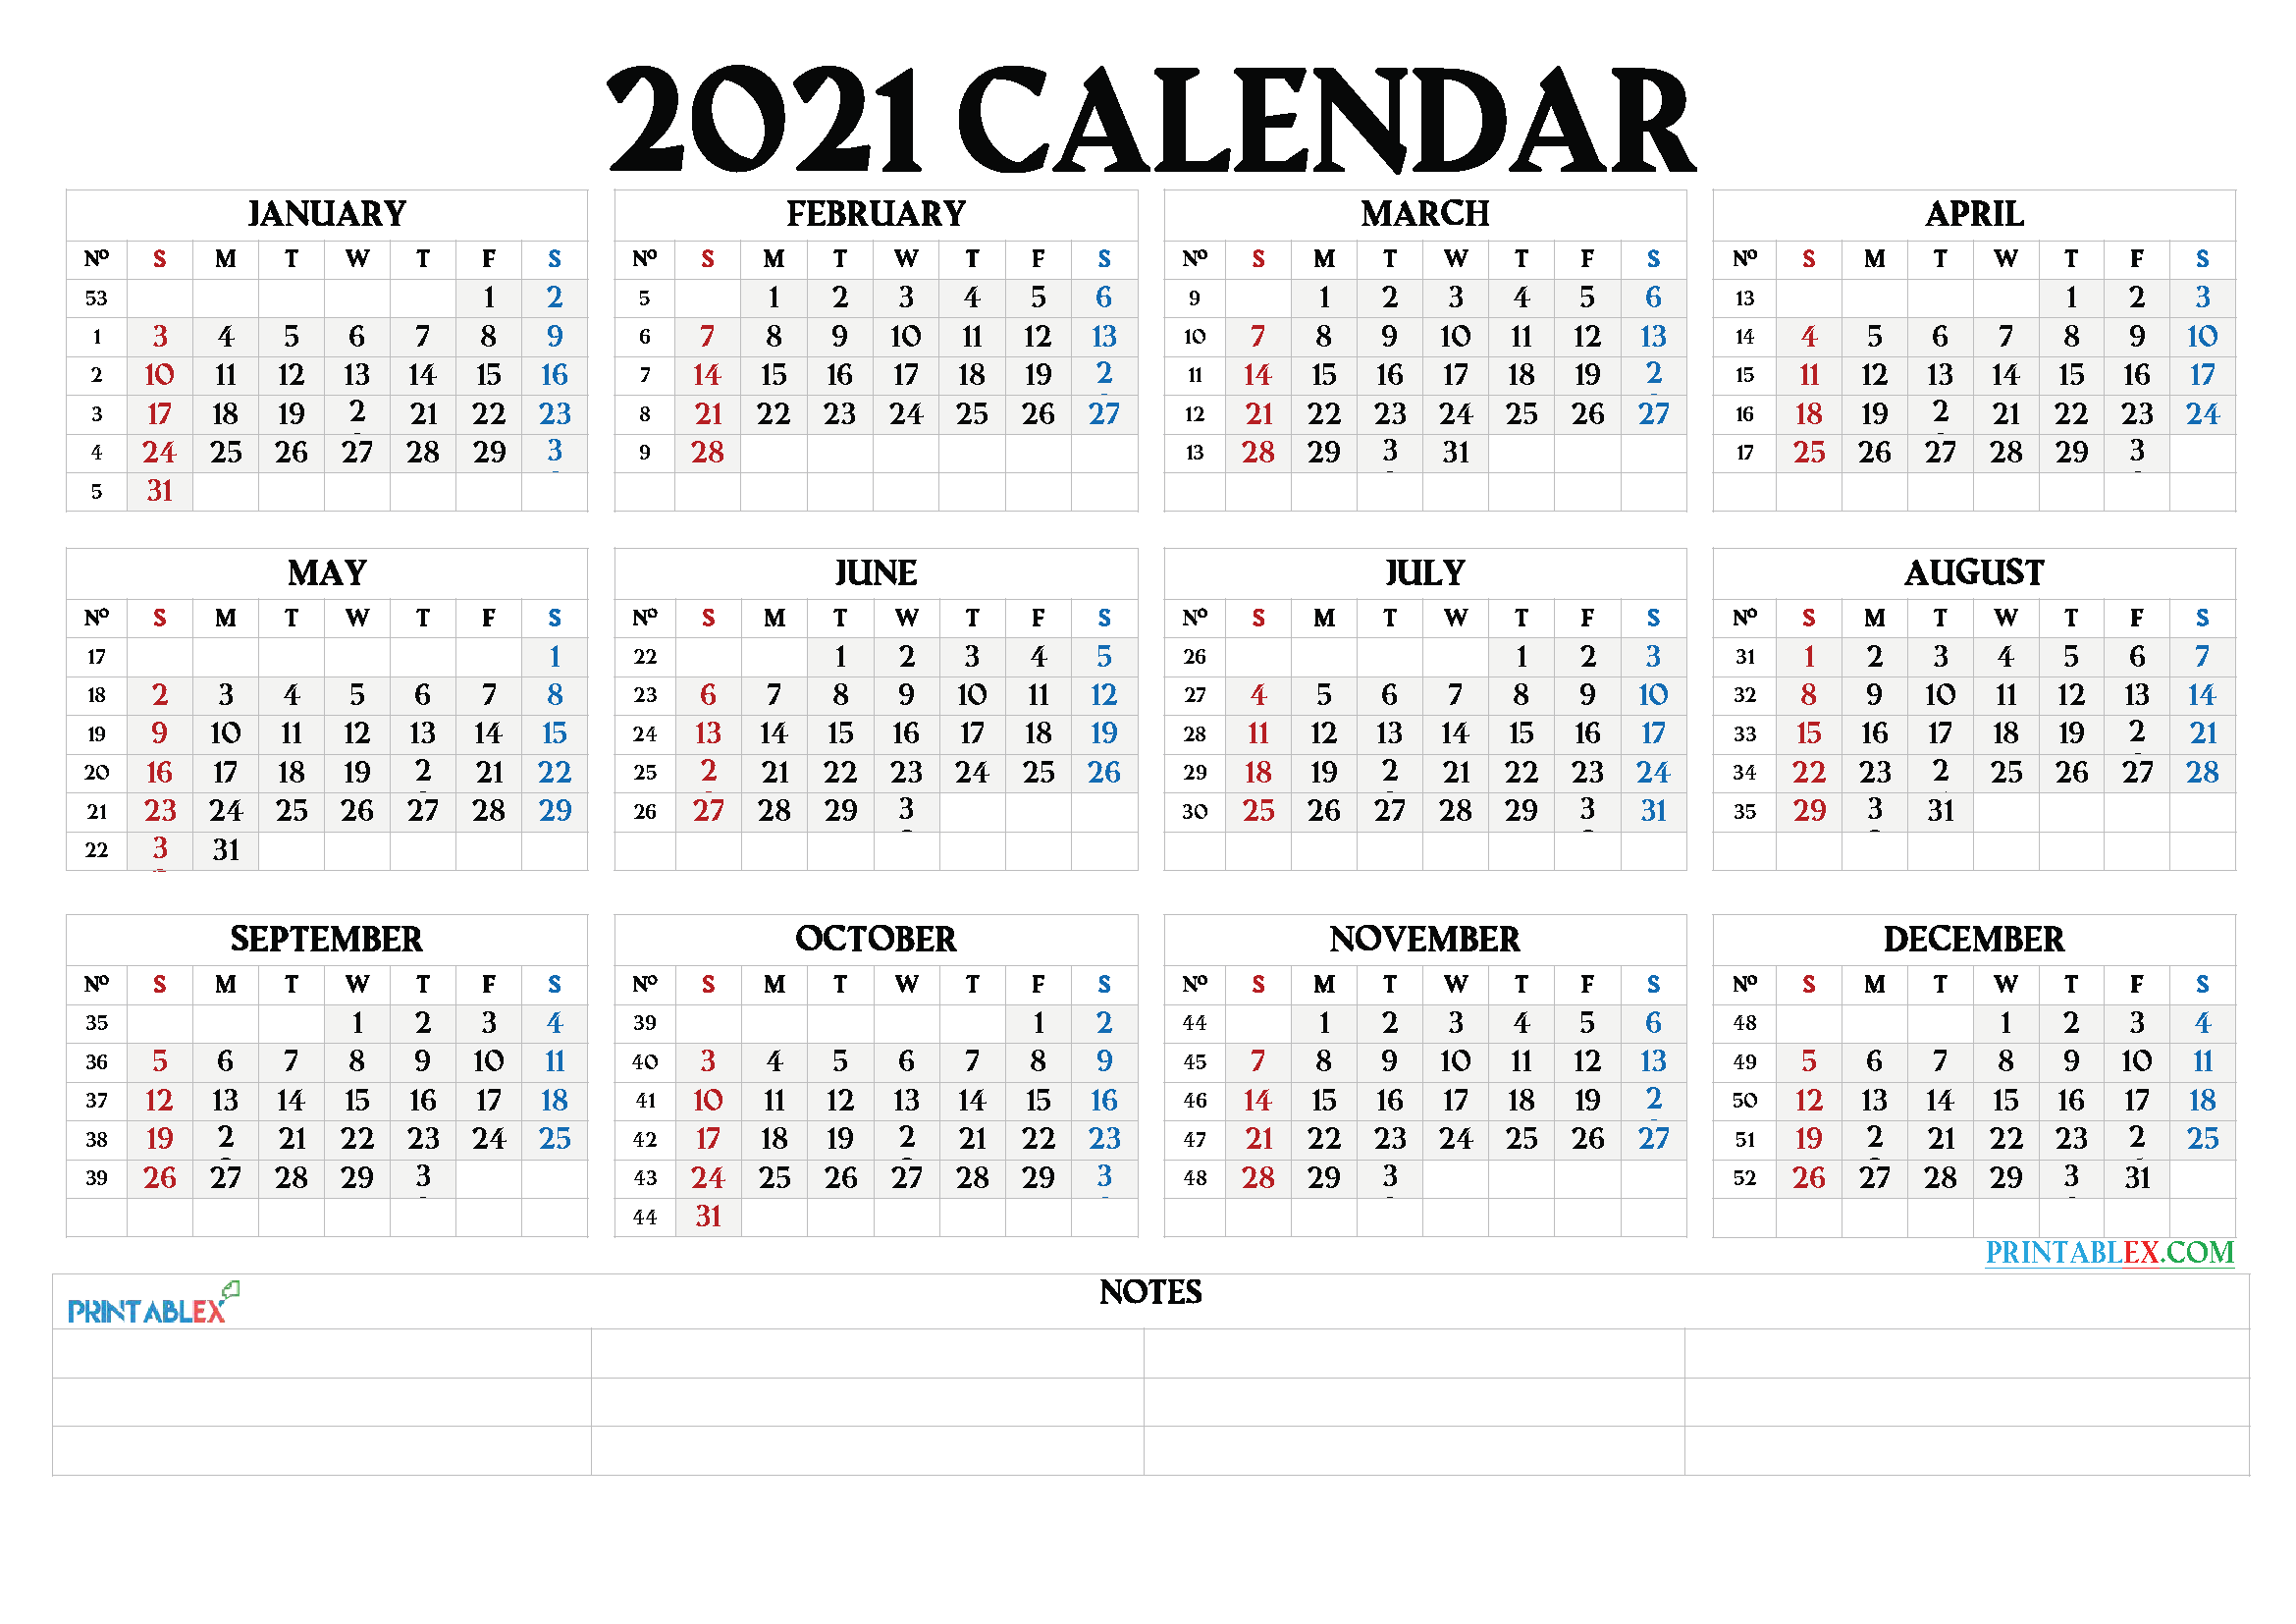 Free 12 Month Word Calendar Template 2021 : 2021 Calendar Throughout Every Day Is A Holiday Calendar 2021 Printable